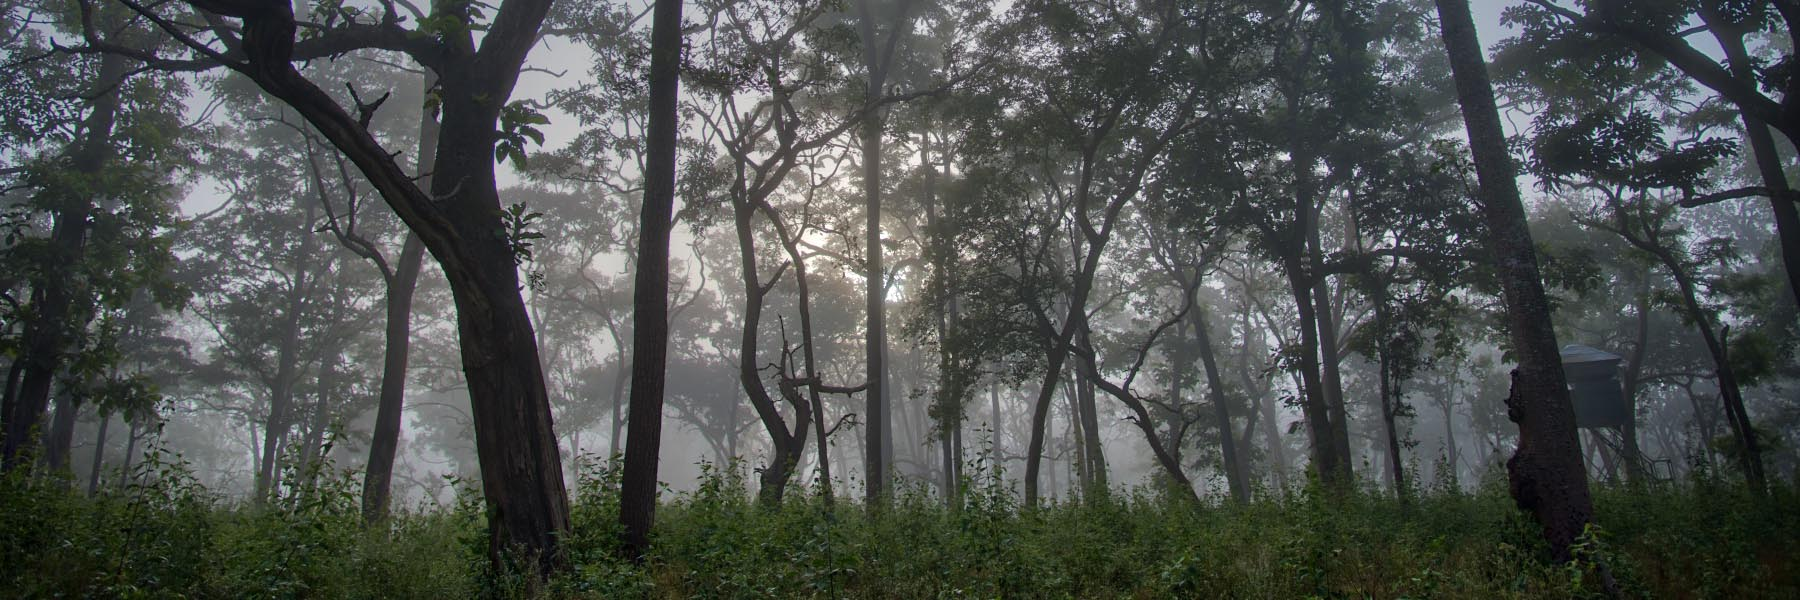 10 reasons to opt for forest vacations